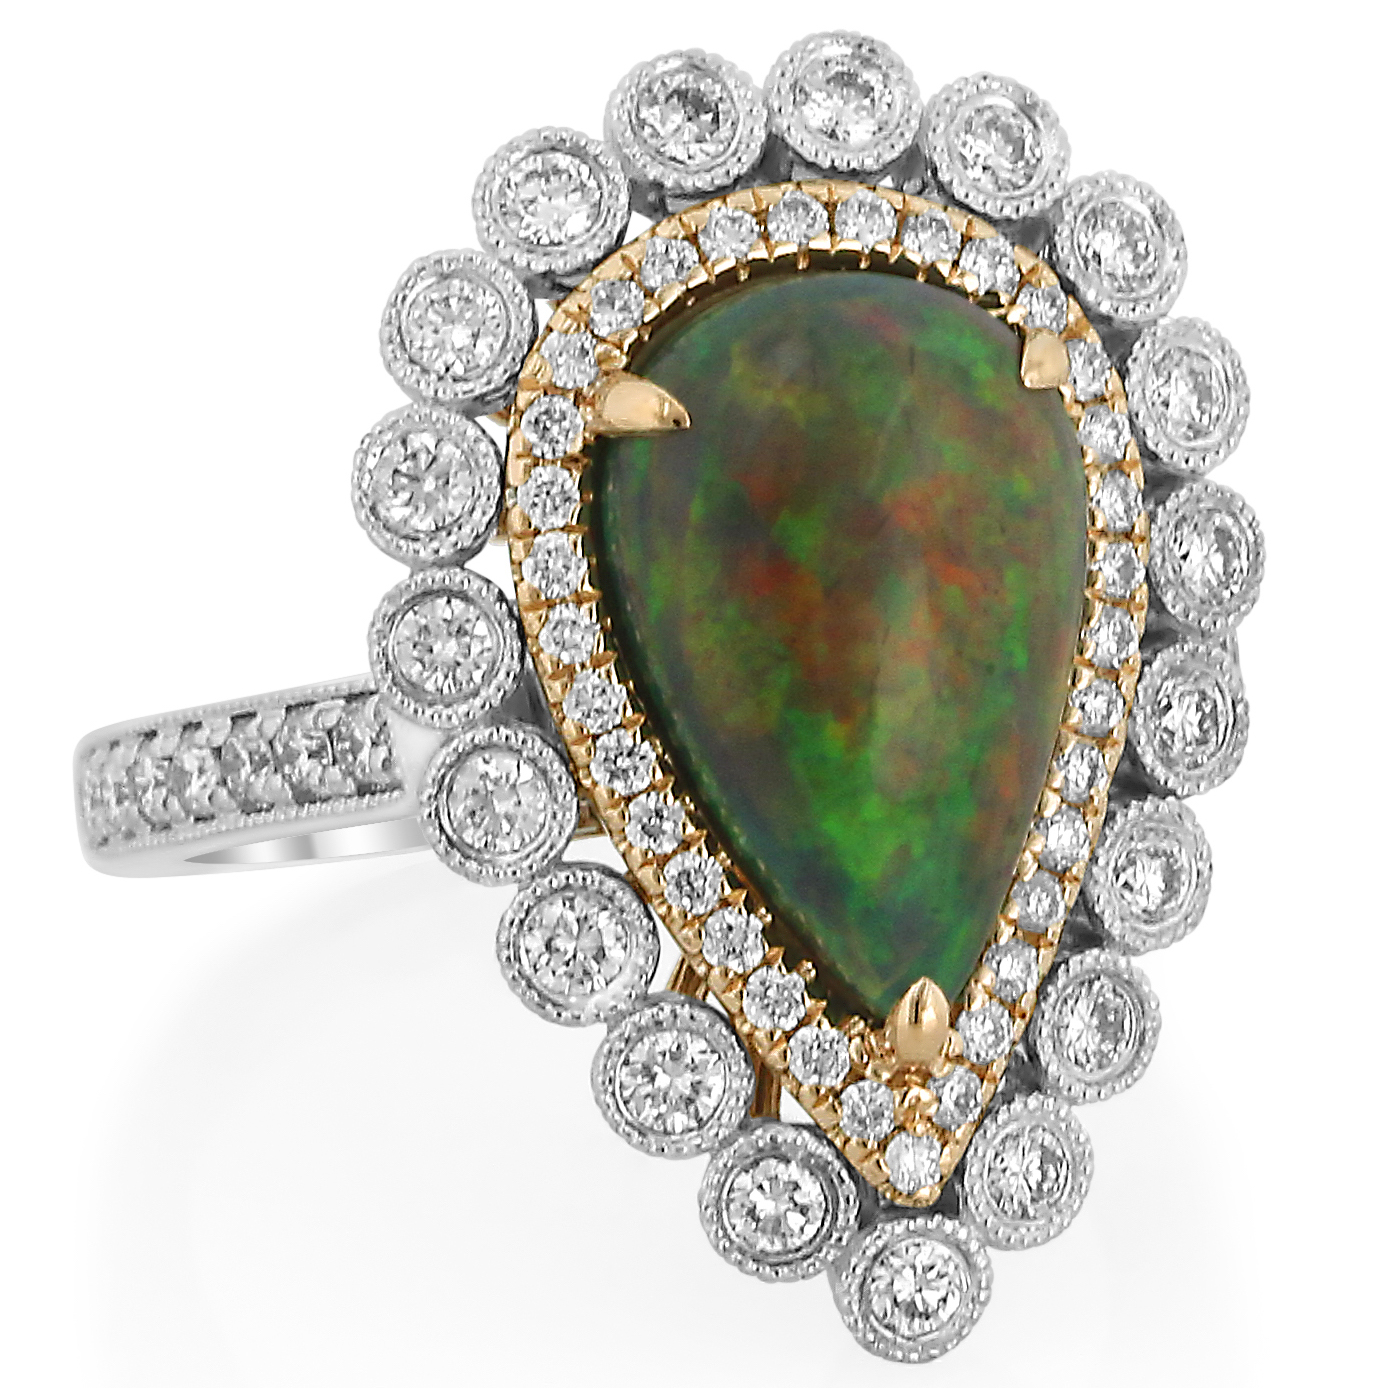 Yael Designs black opal and diamond ring | JCK On Your Market